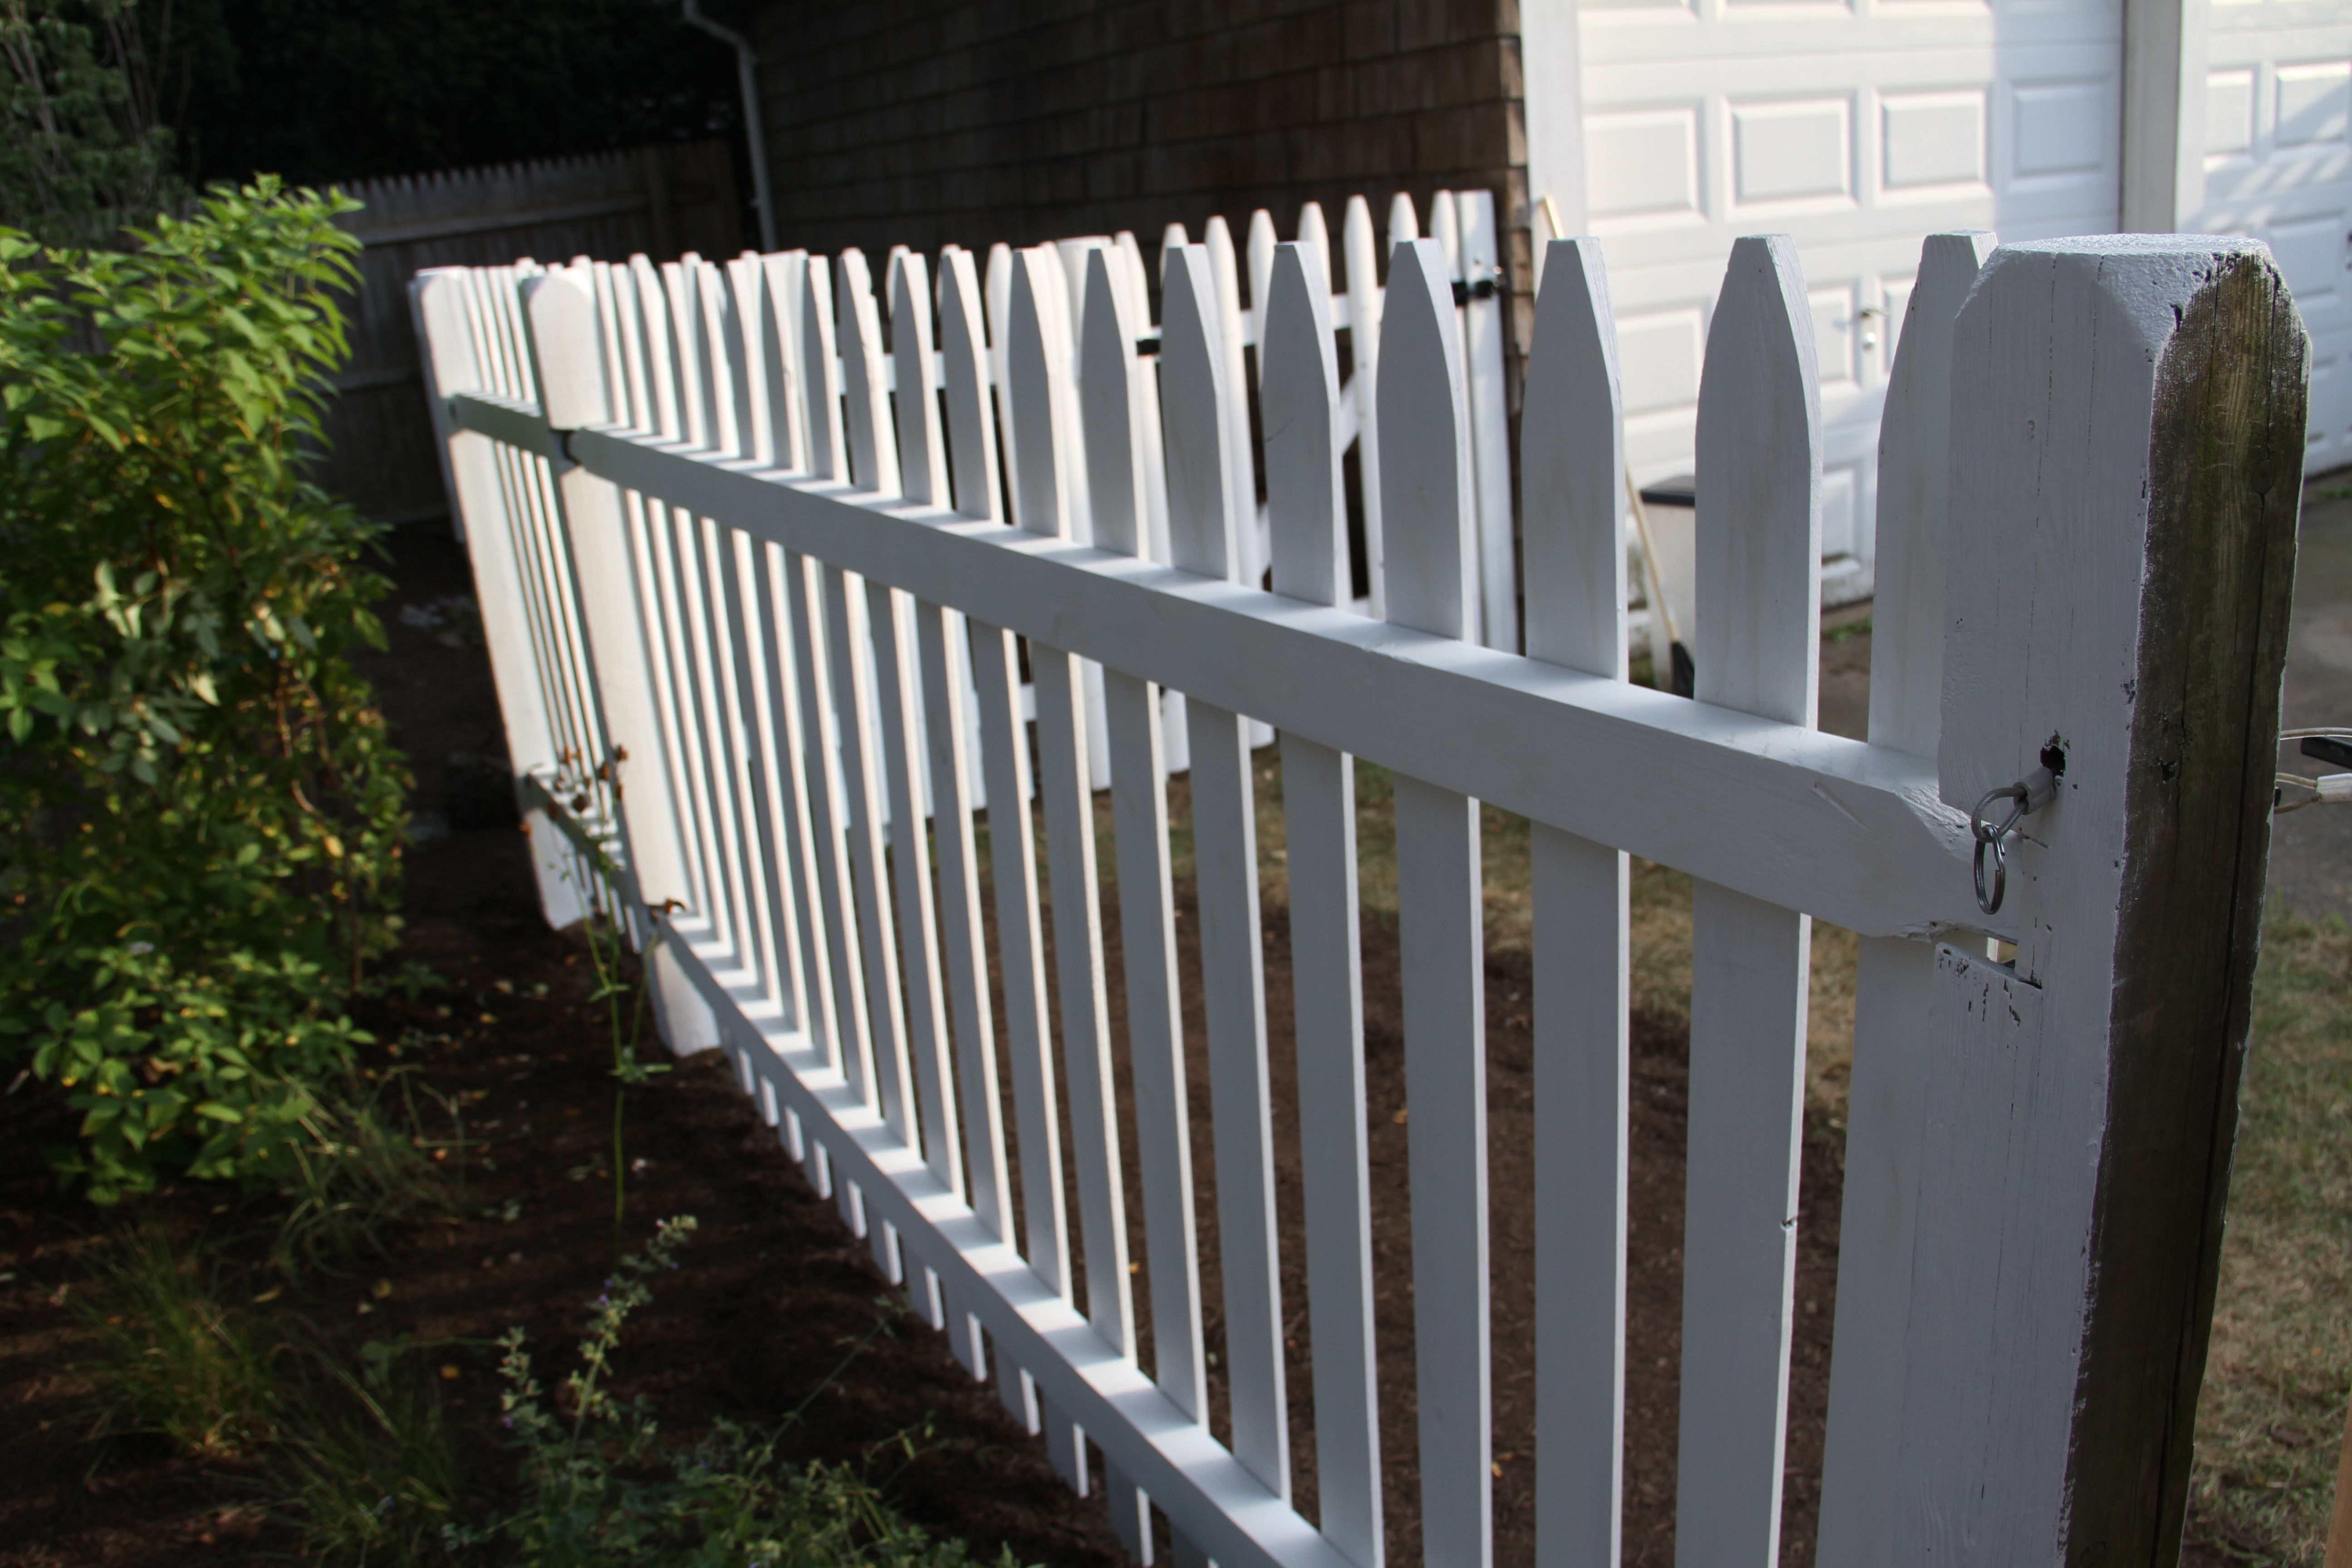 Classic white picket fence.